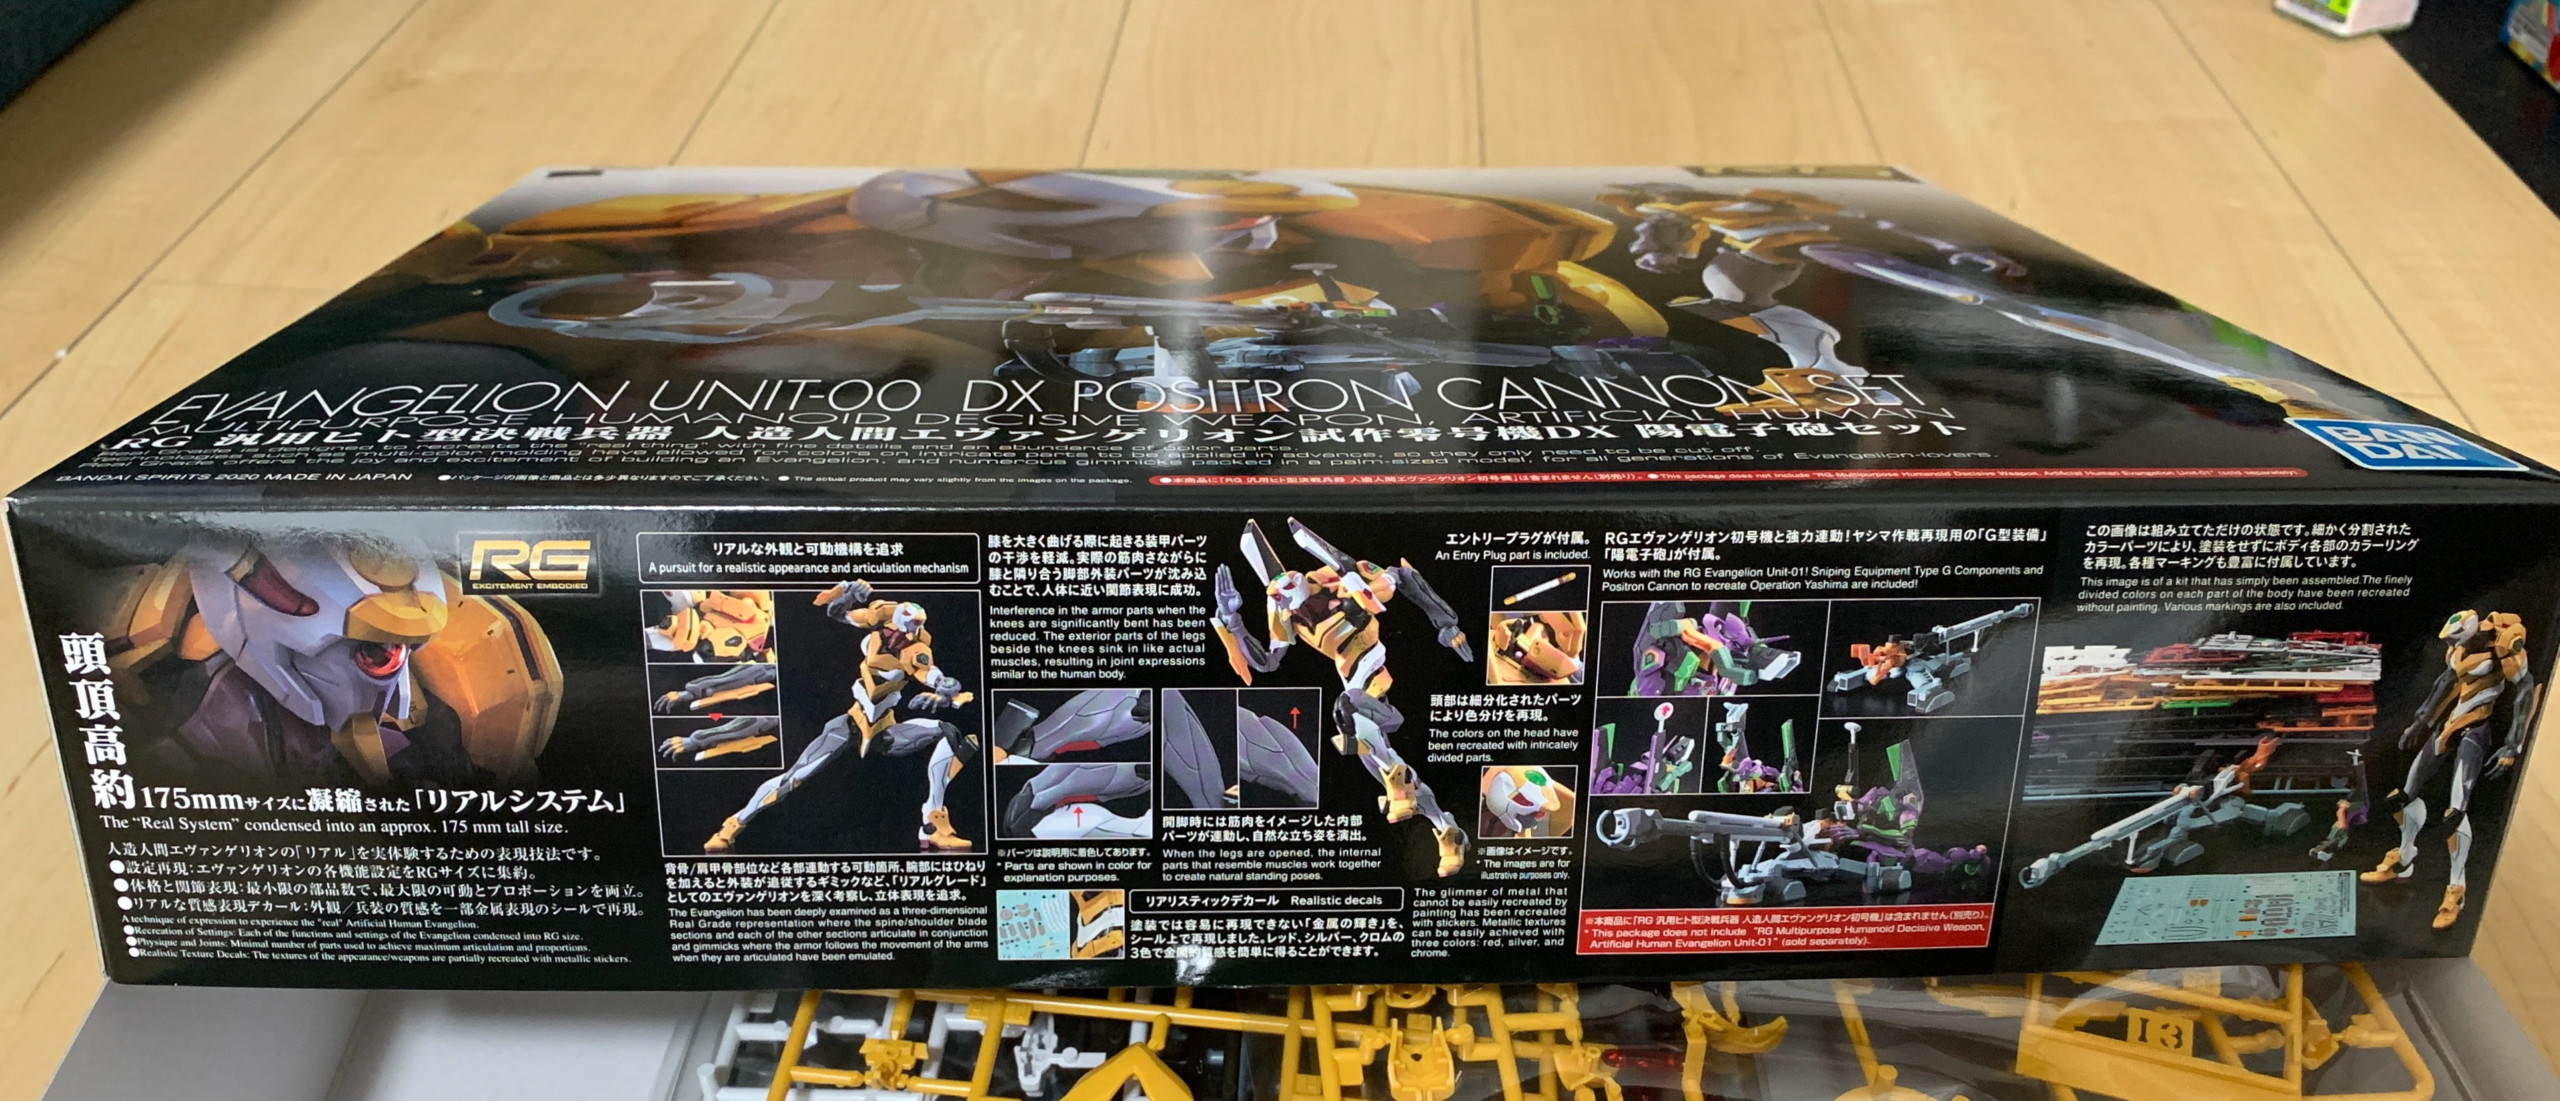 RG All-Purpose Humanoid Decisive Battle Weapon Artificial Human Evangelion ProtoType Unit-00 DX Positron Sniper Rifle Set